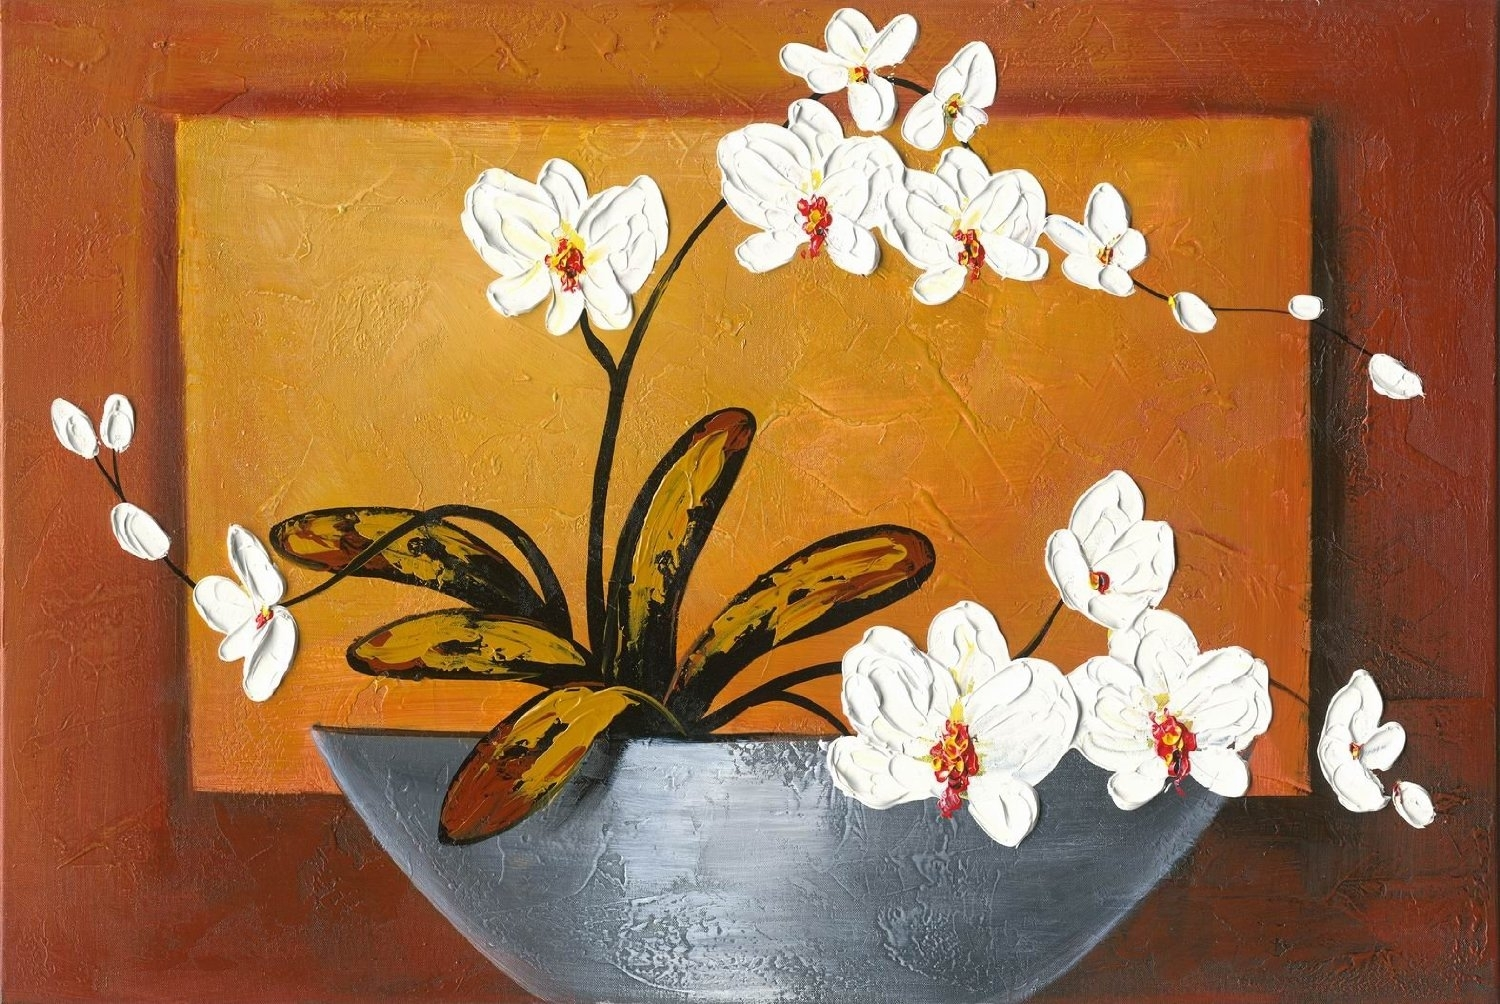 Orchid-Modern Canvas Art Wall Decor-Floral Oil Painting Wall Art pertaining to Modern Framed Wall Art Canvas (Image 16 of 20)